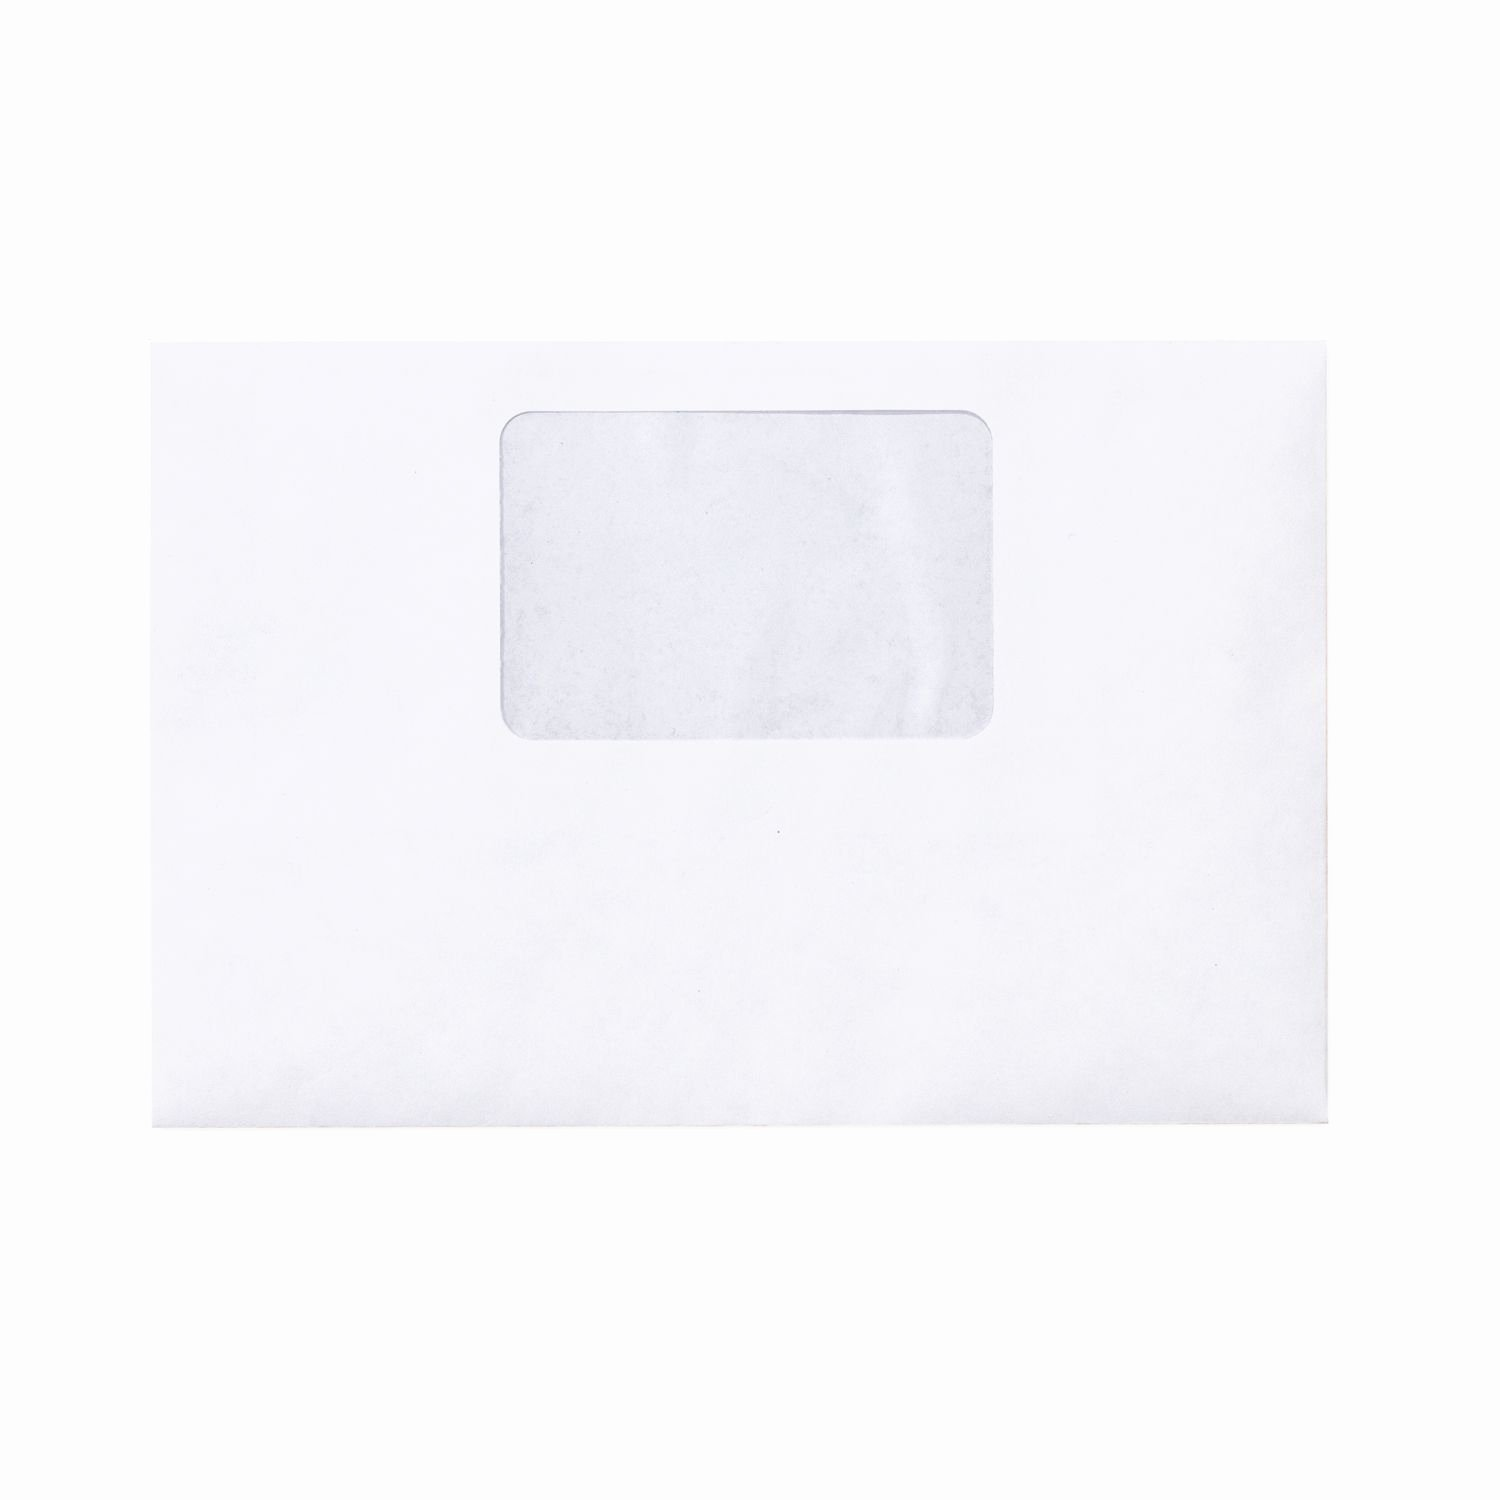 "10 Window Envelope Template Pdf Awesome 6"" X 9"" Paper Registration Envelope Window with Pocket Blank"